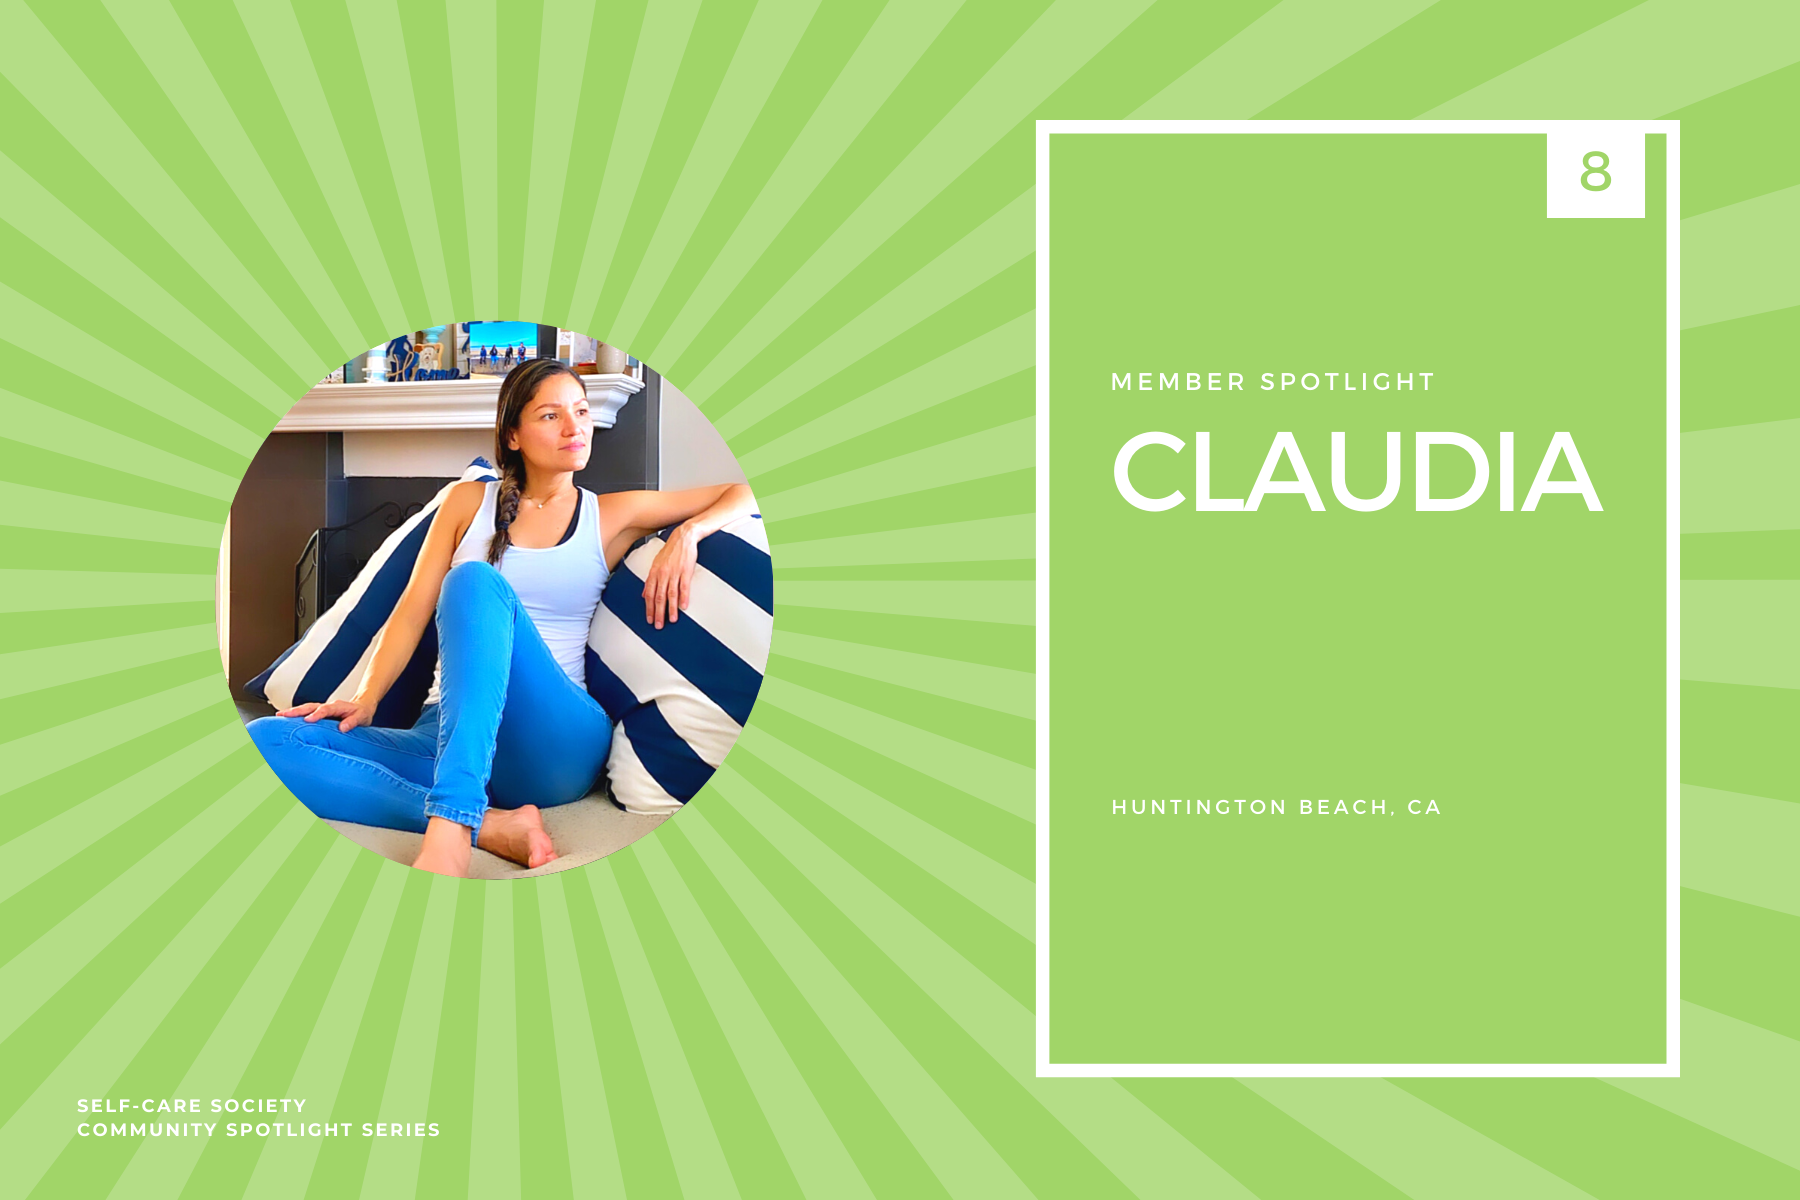 Self-Care Community Spotlight - Claudia